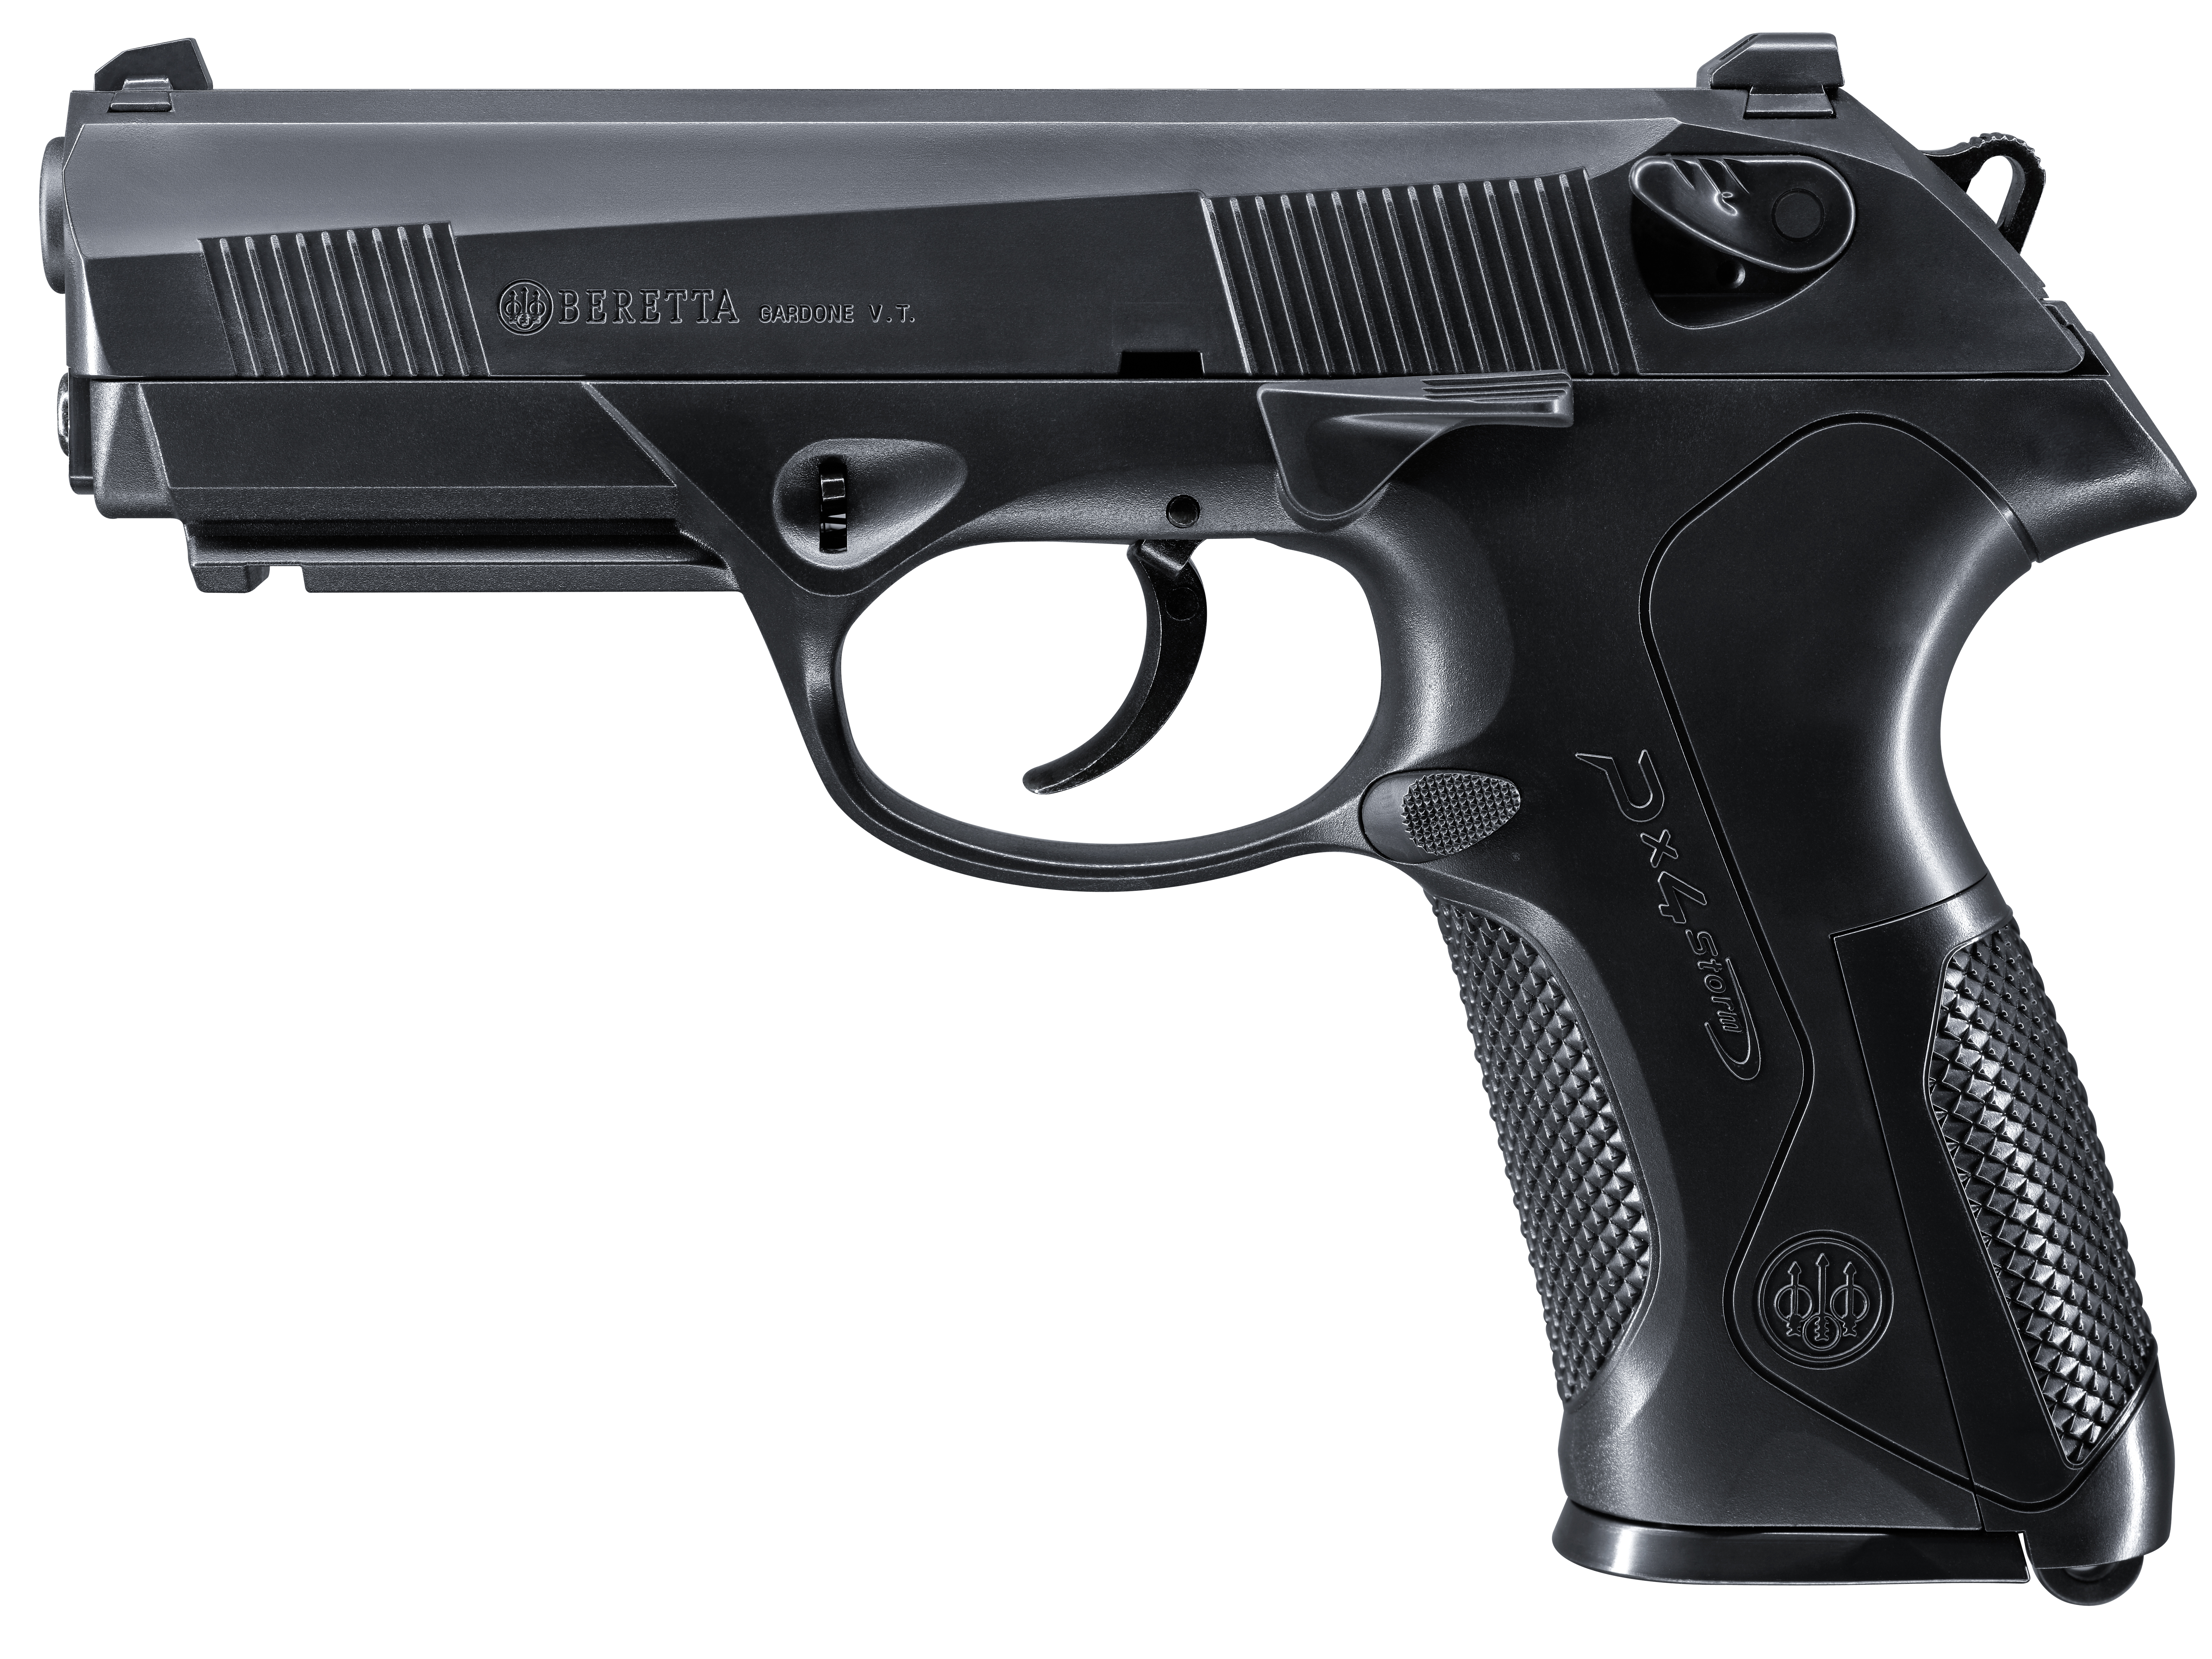 BERETTA (Umarex) Airsoft Spring Operated Px4 Storm